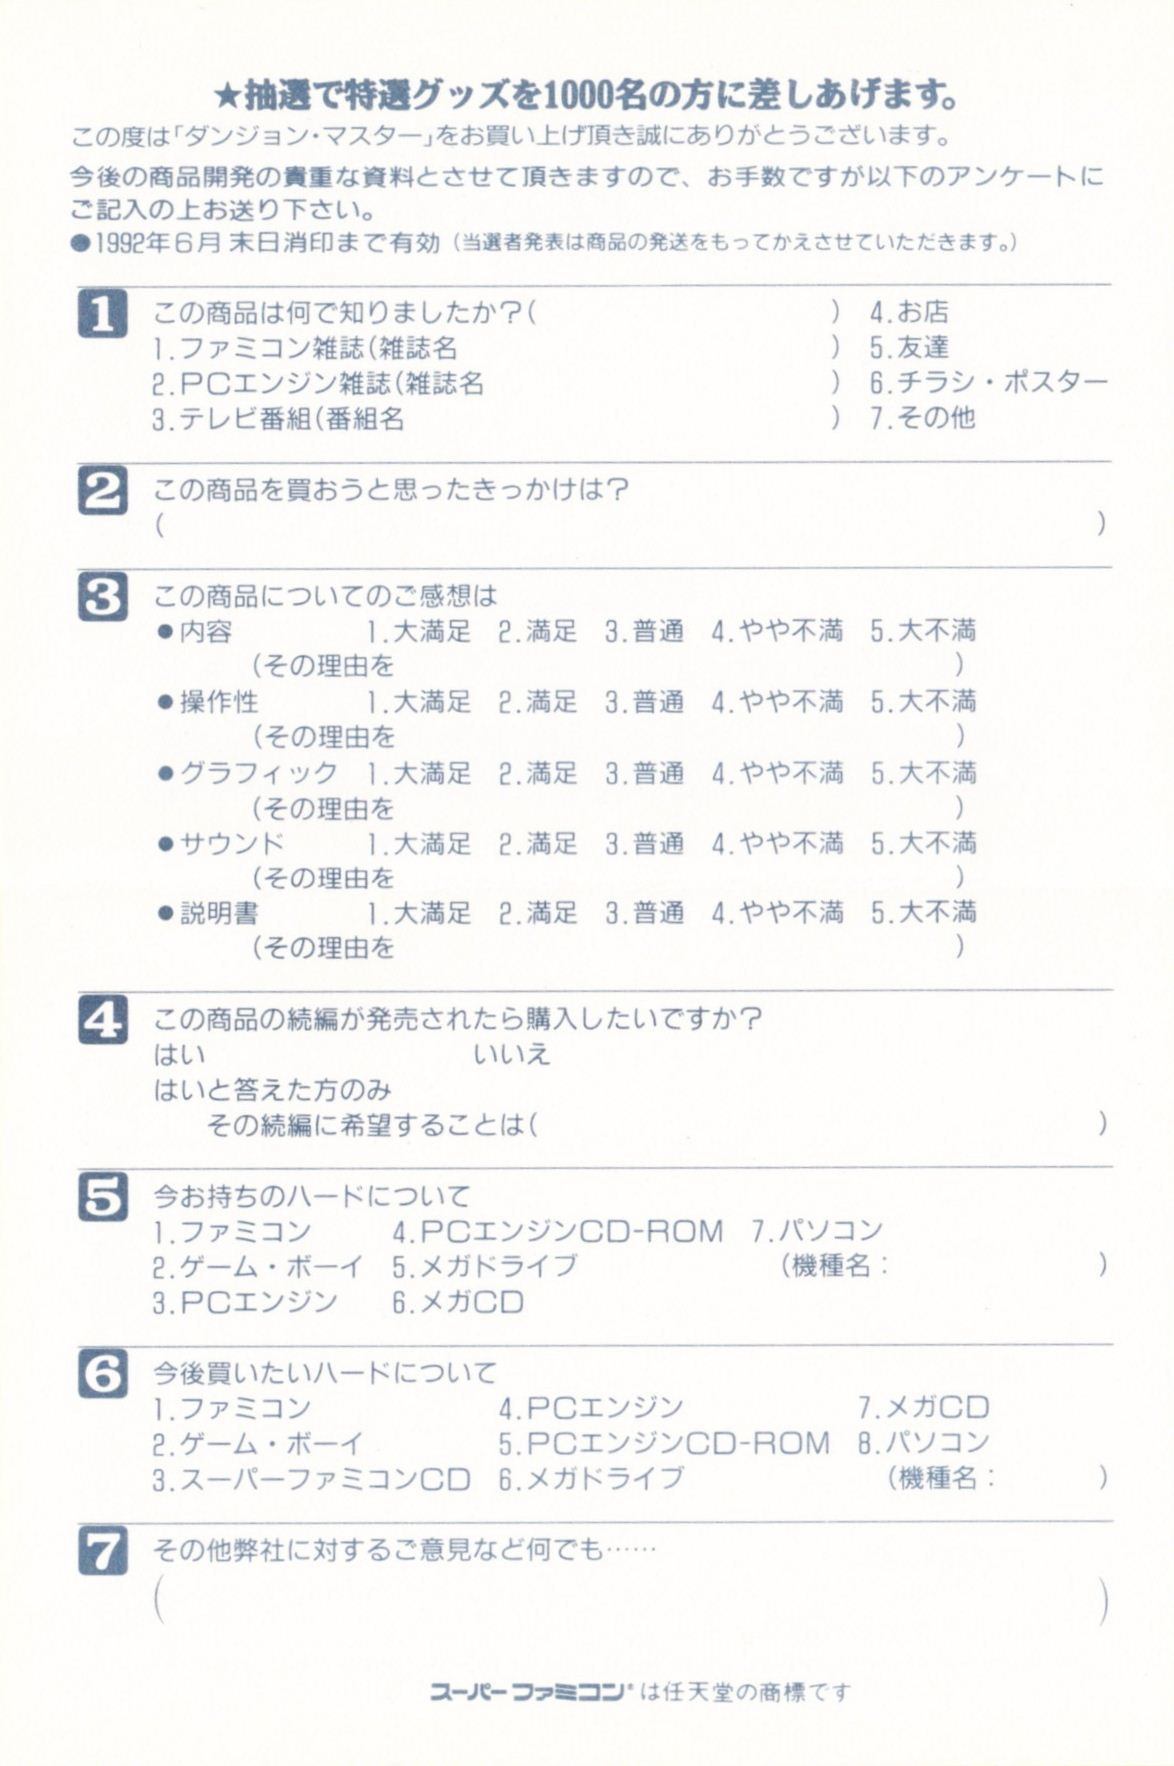 Game - Dungeon Master - JP - Super Famicom - Registration Card - Back - Scan